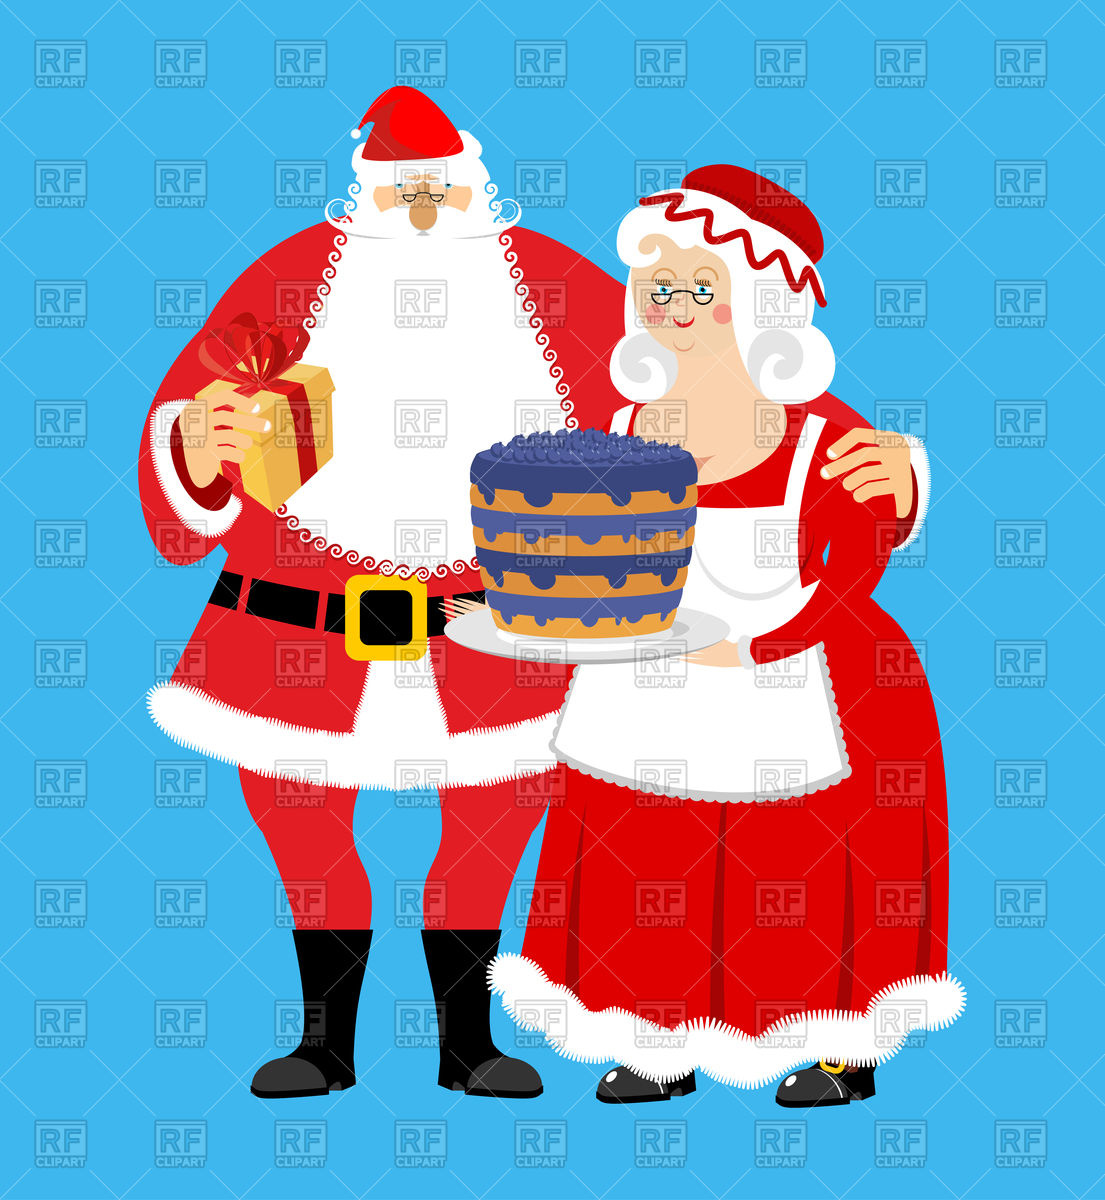 Santa and Mrs. Claus with gifts and bilberry cake, Christmas family Stock  Vector Image.